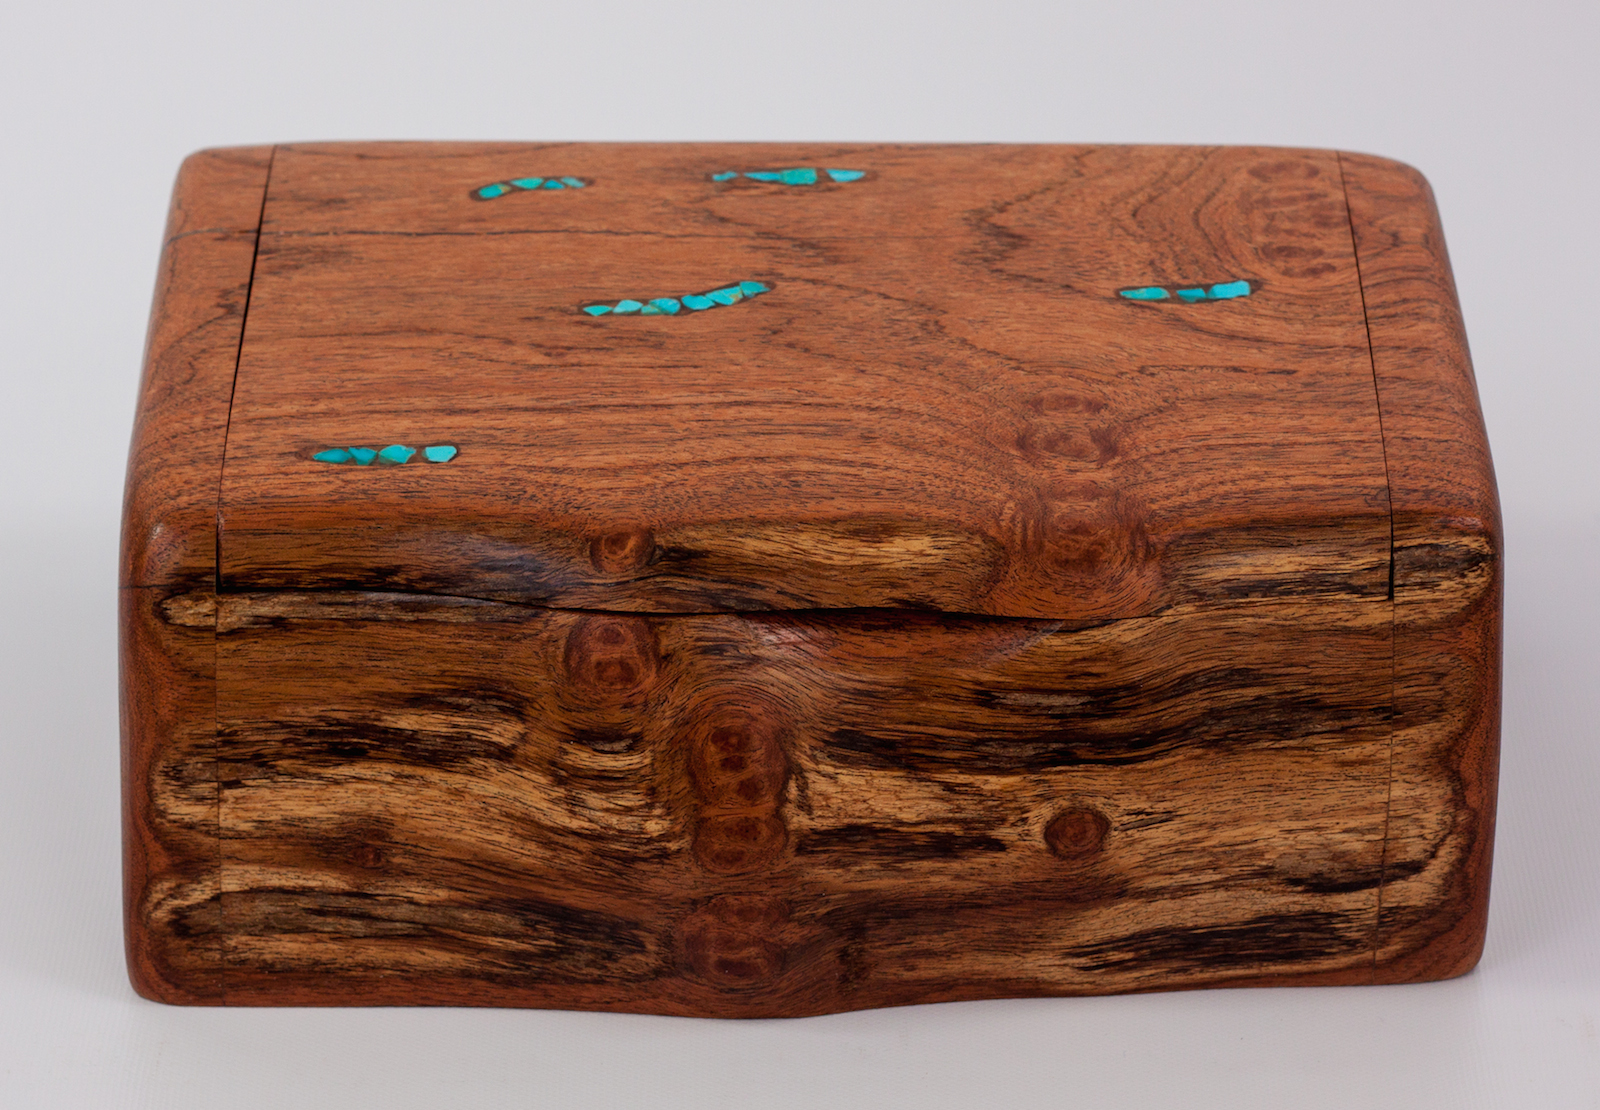 Mesquite Log Box With Turquoise Stone Inlay